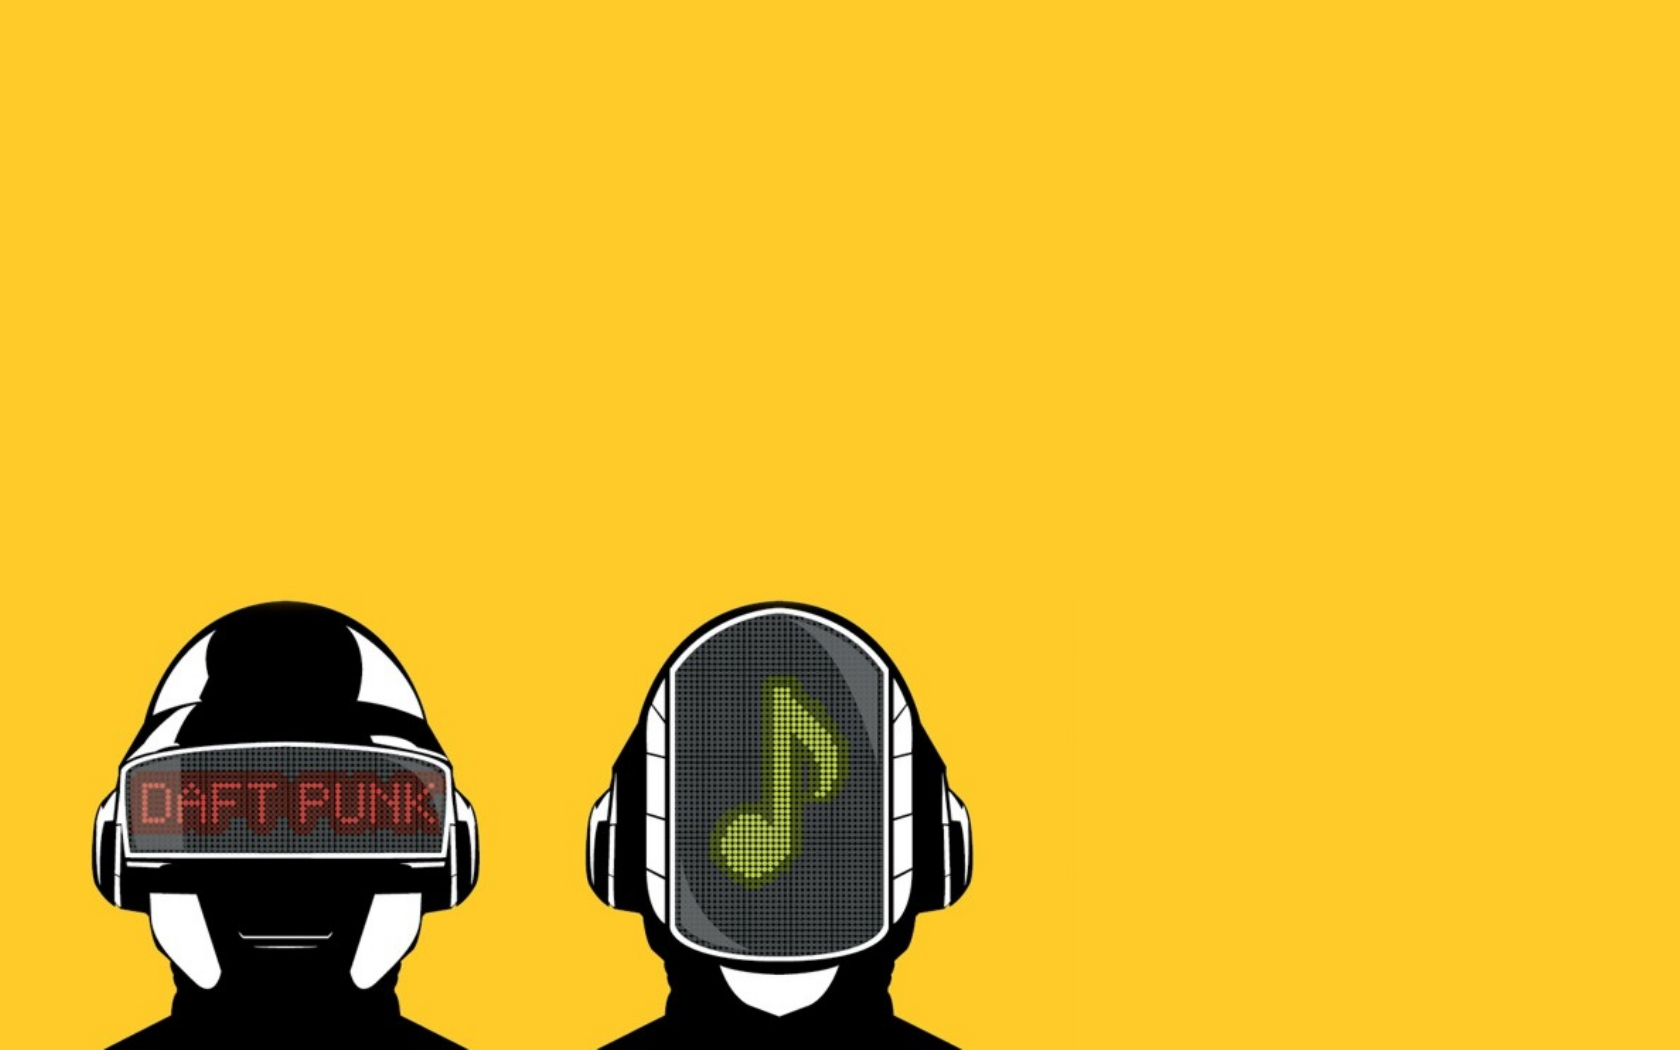 Daft Punk Wallpaper and Background Image | 1680x1050 | ID:236171 ...